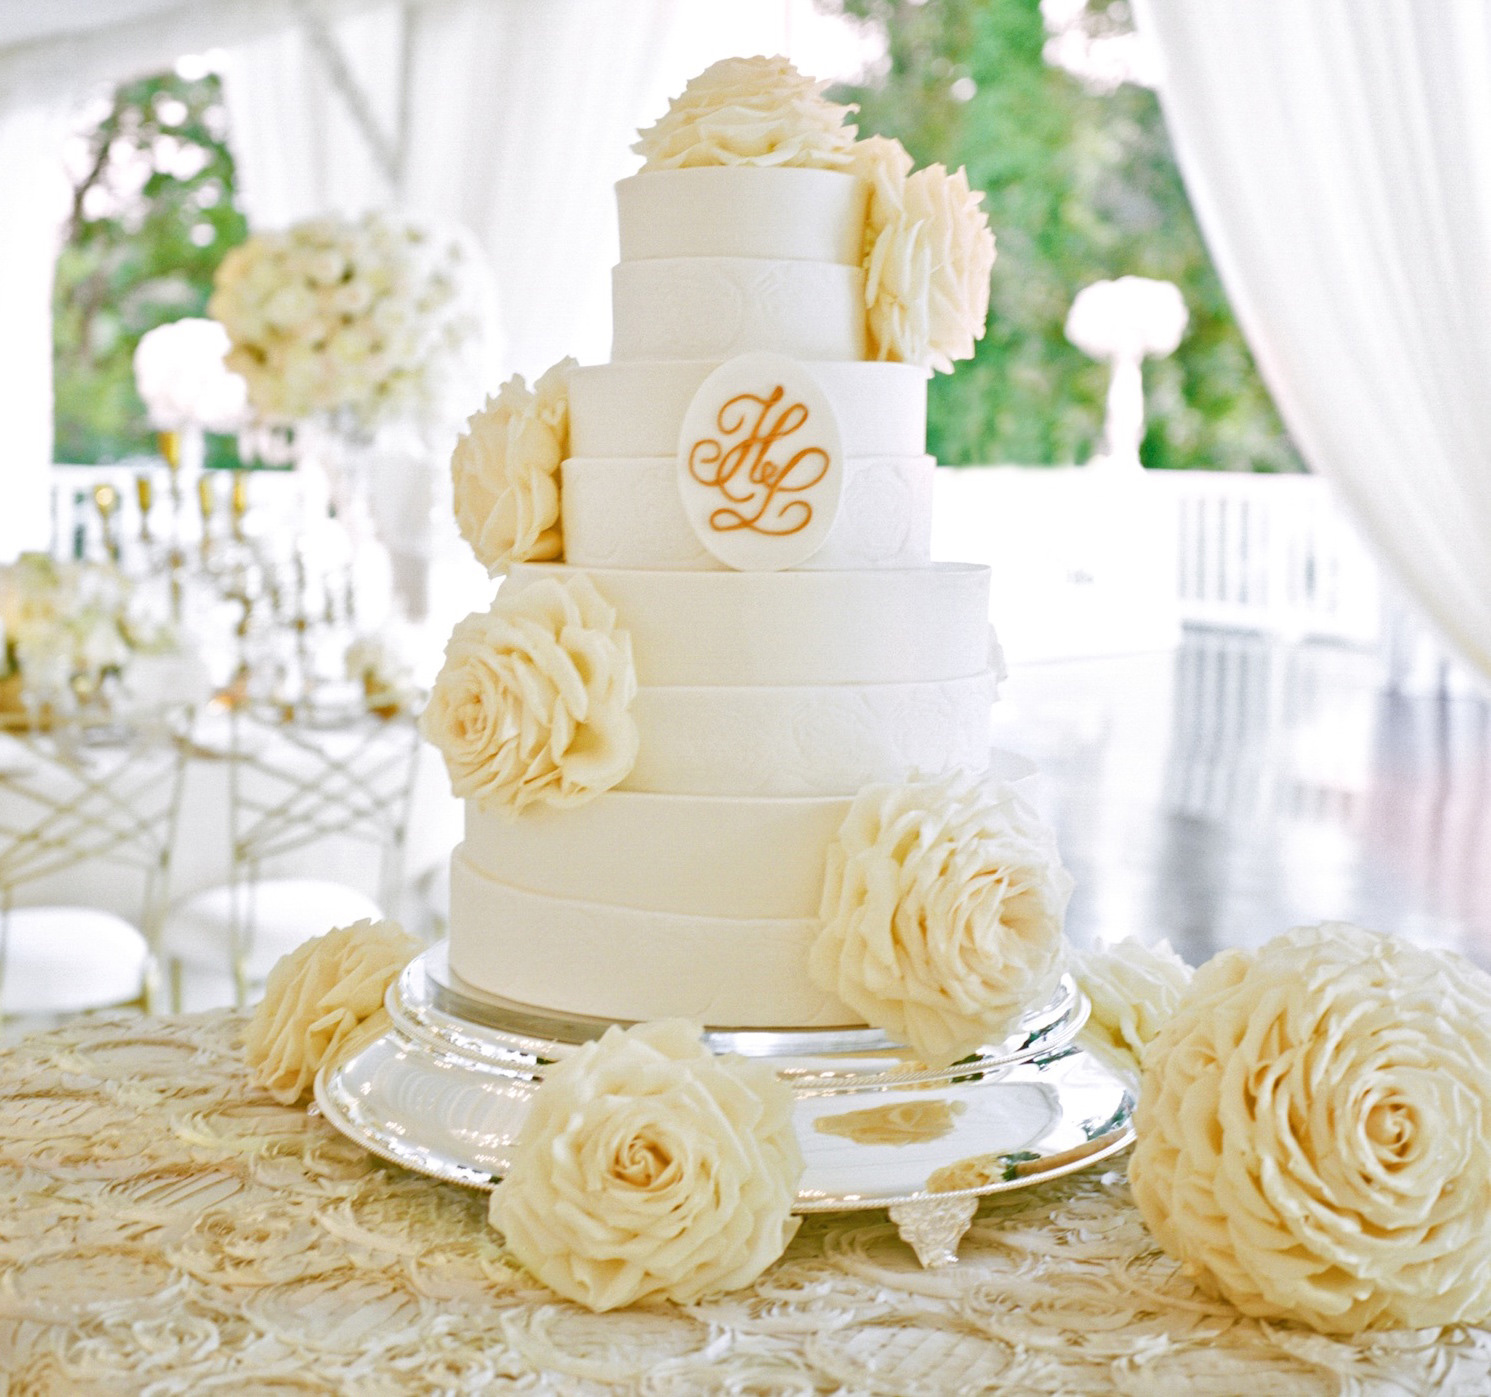 White wedding cake with monogram and glamelia flowers